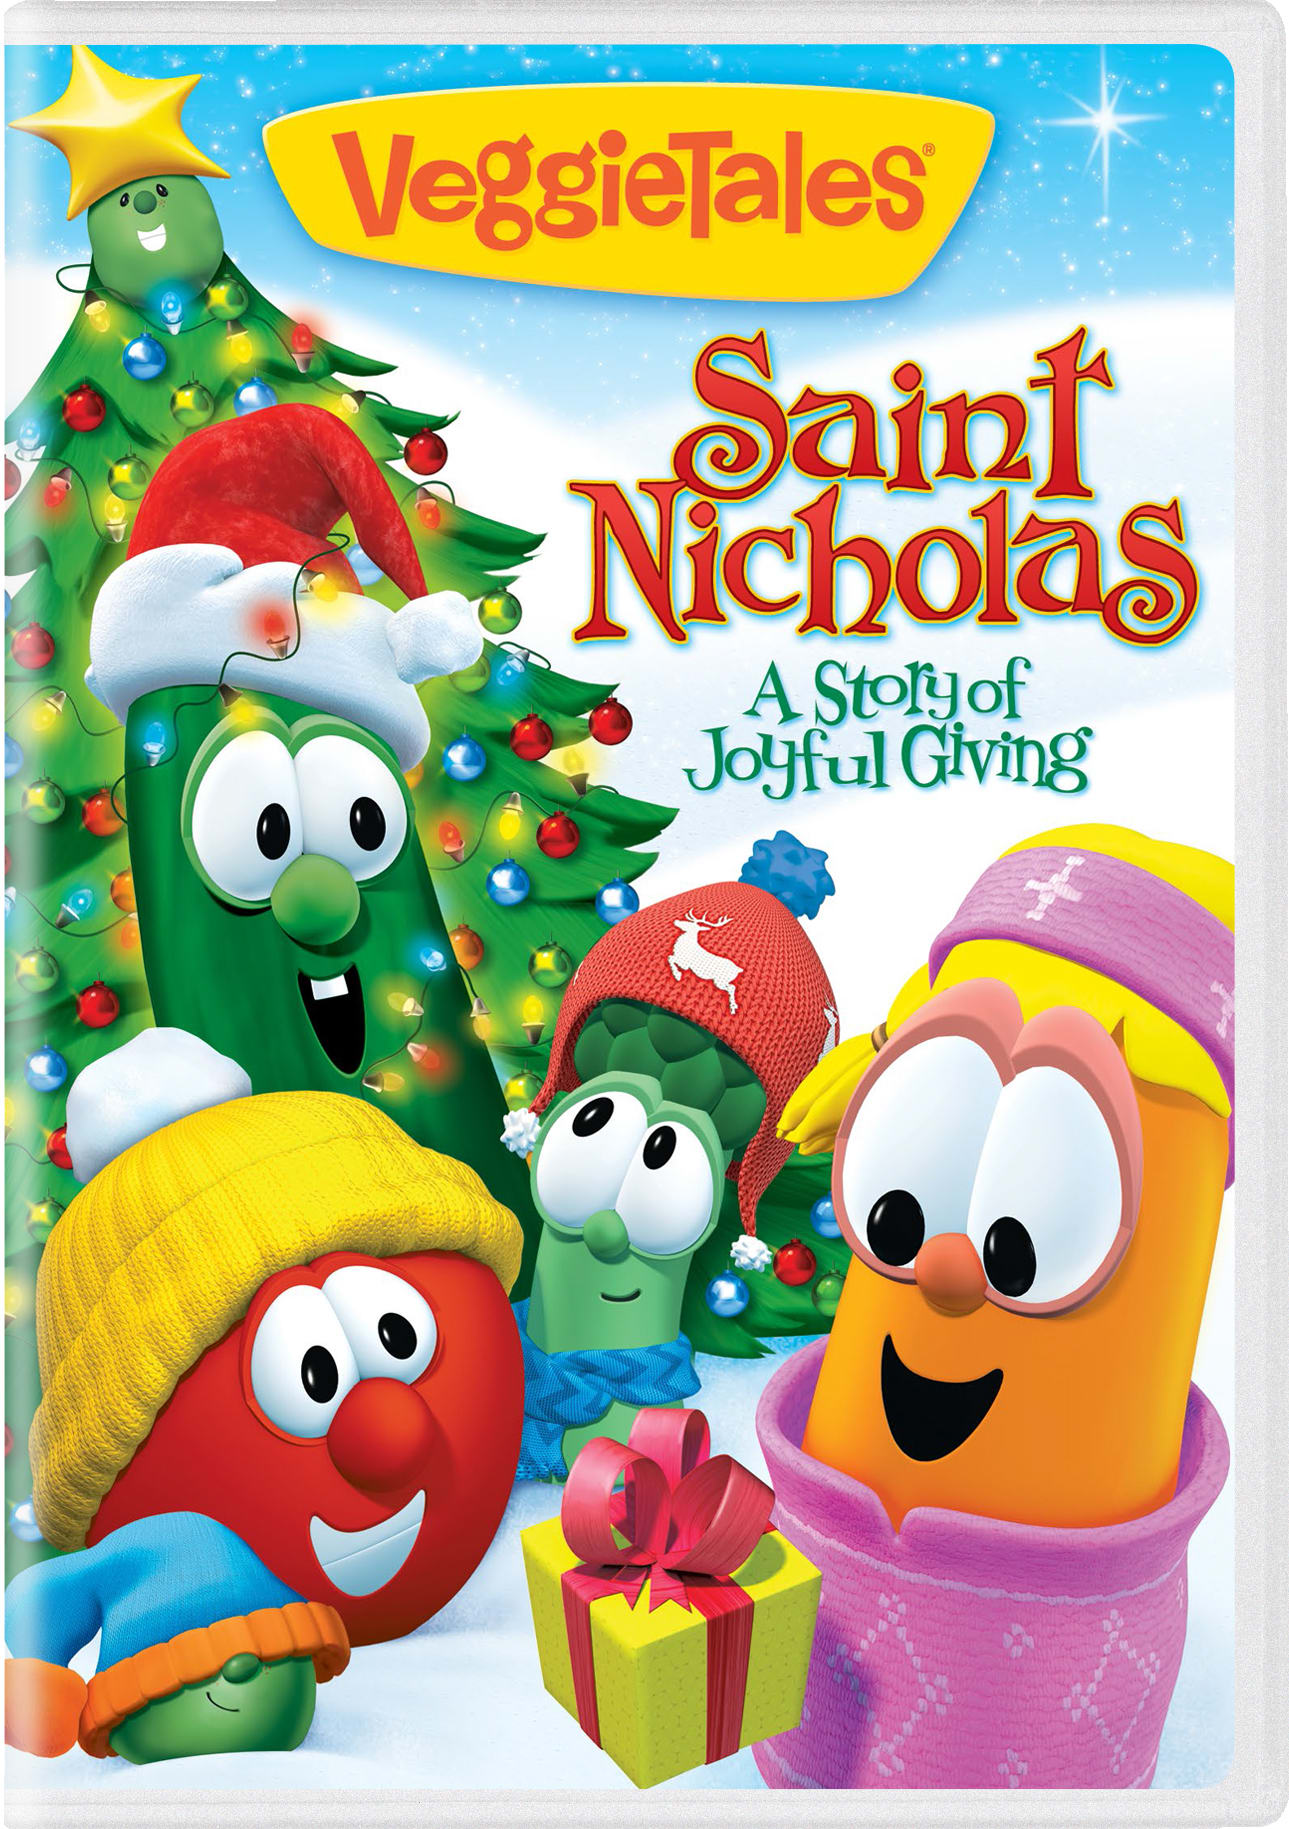 VeggieTales: Saint Nicholas - A Story of Joyful Giving [DVD]